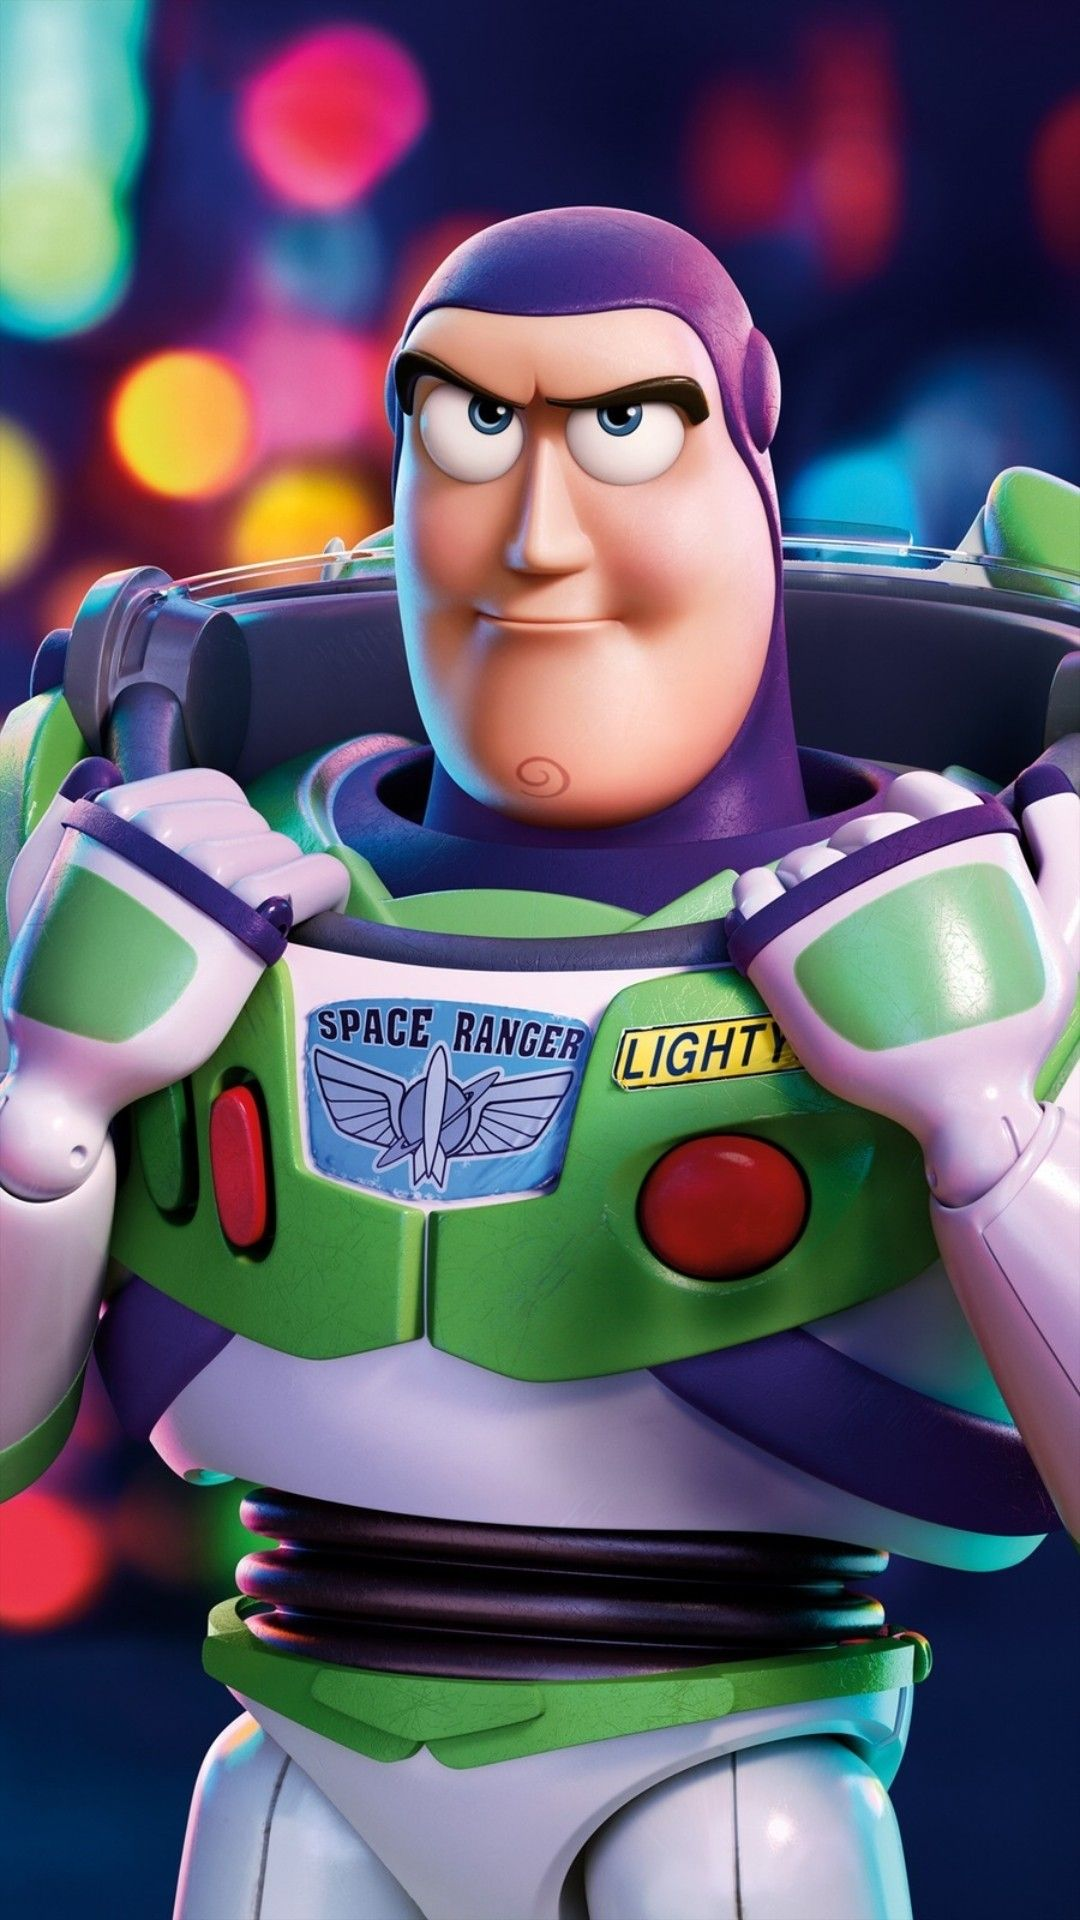 Pin by Alex C on Disney ) (With images) Toy story buzz